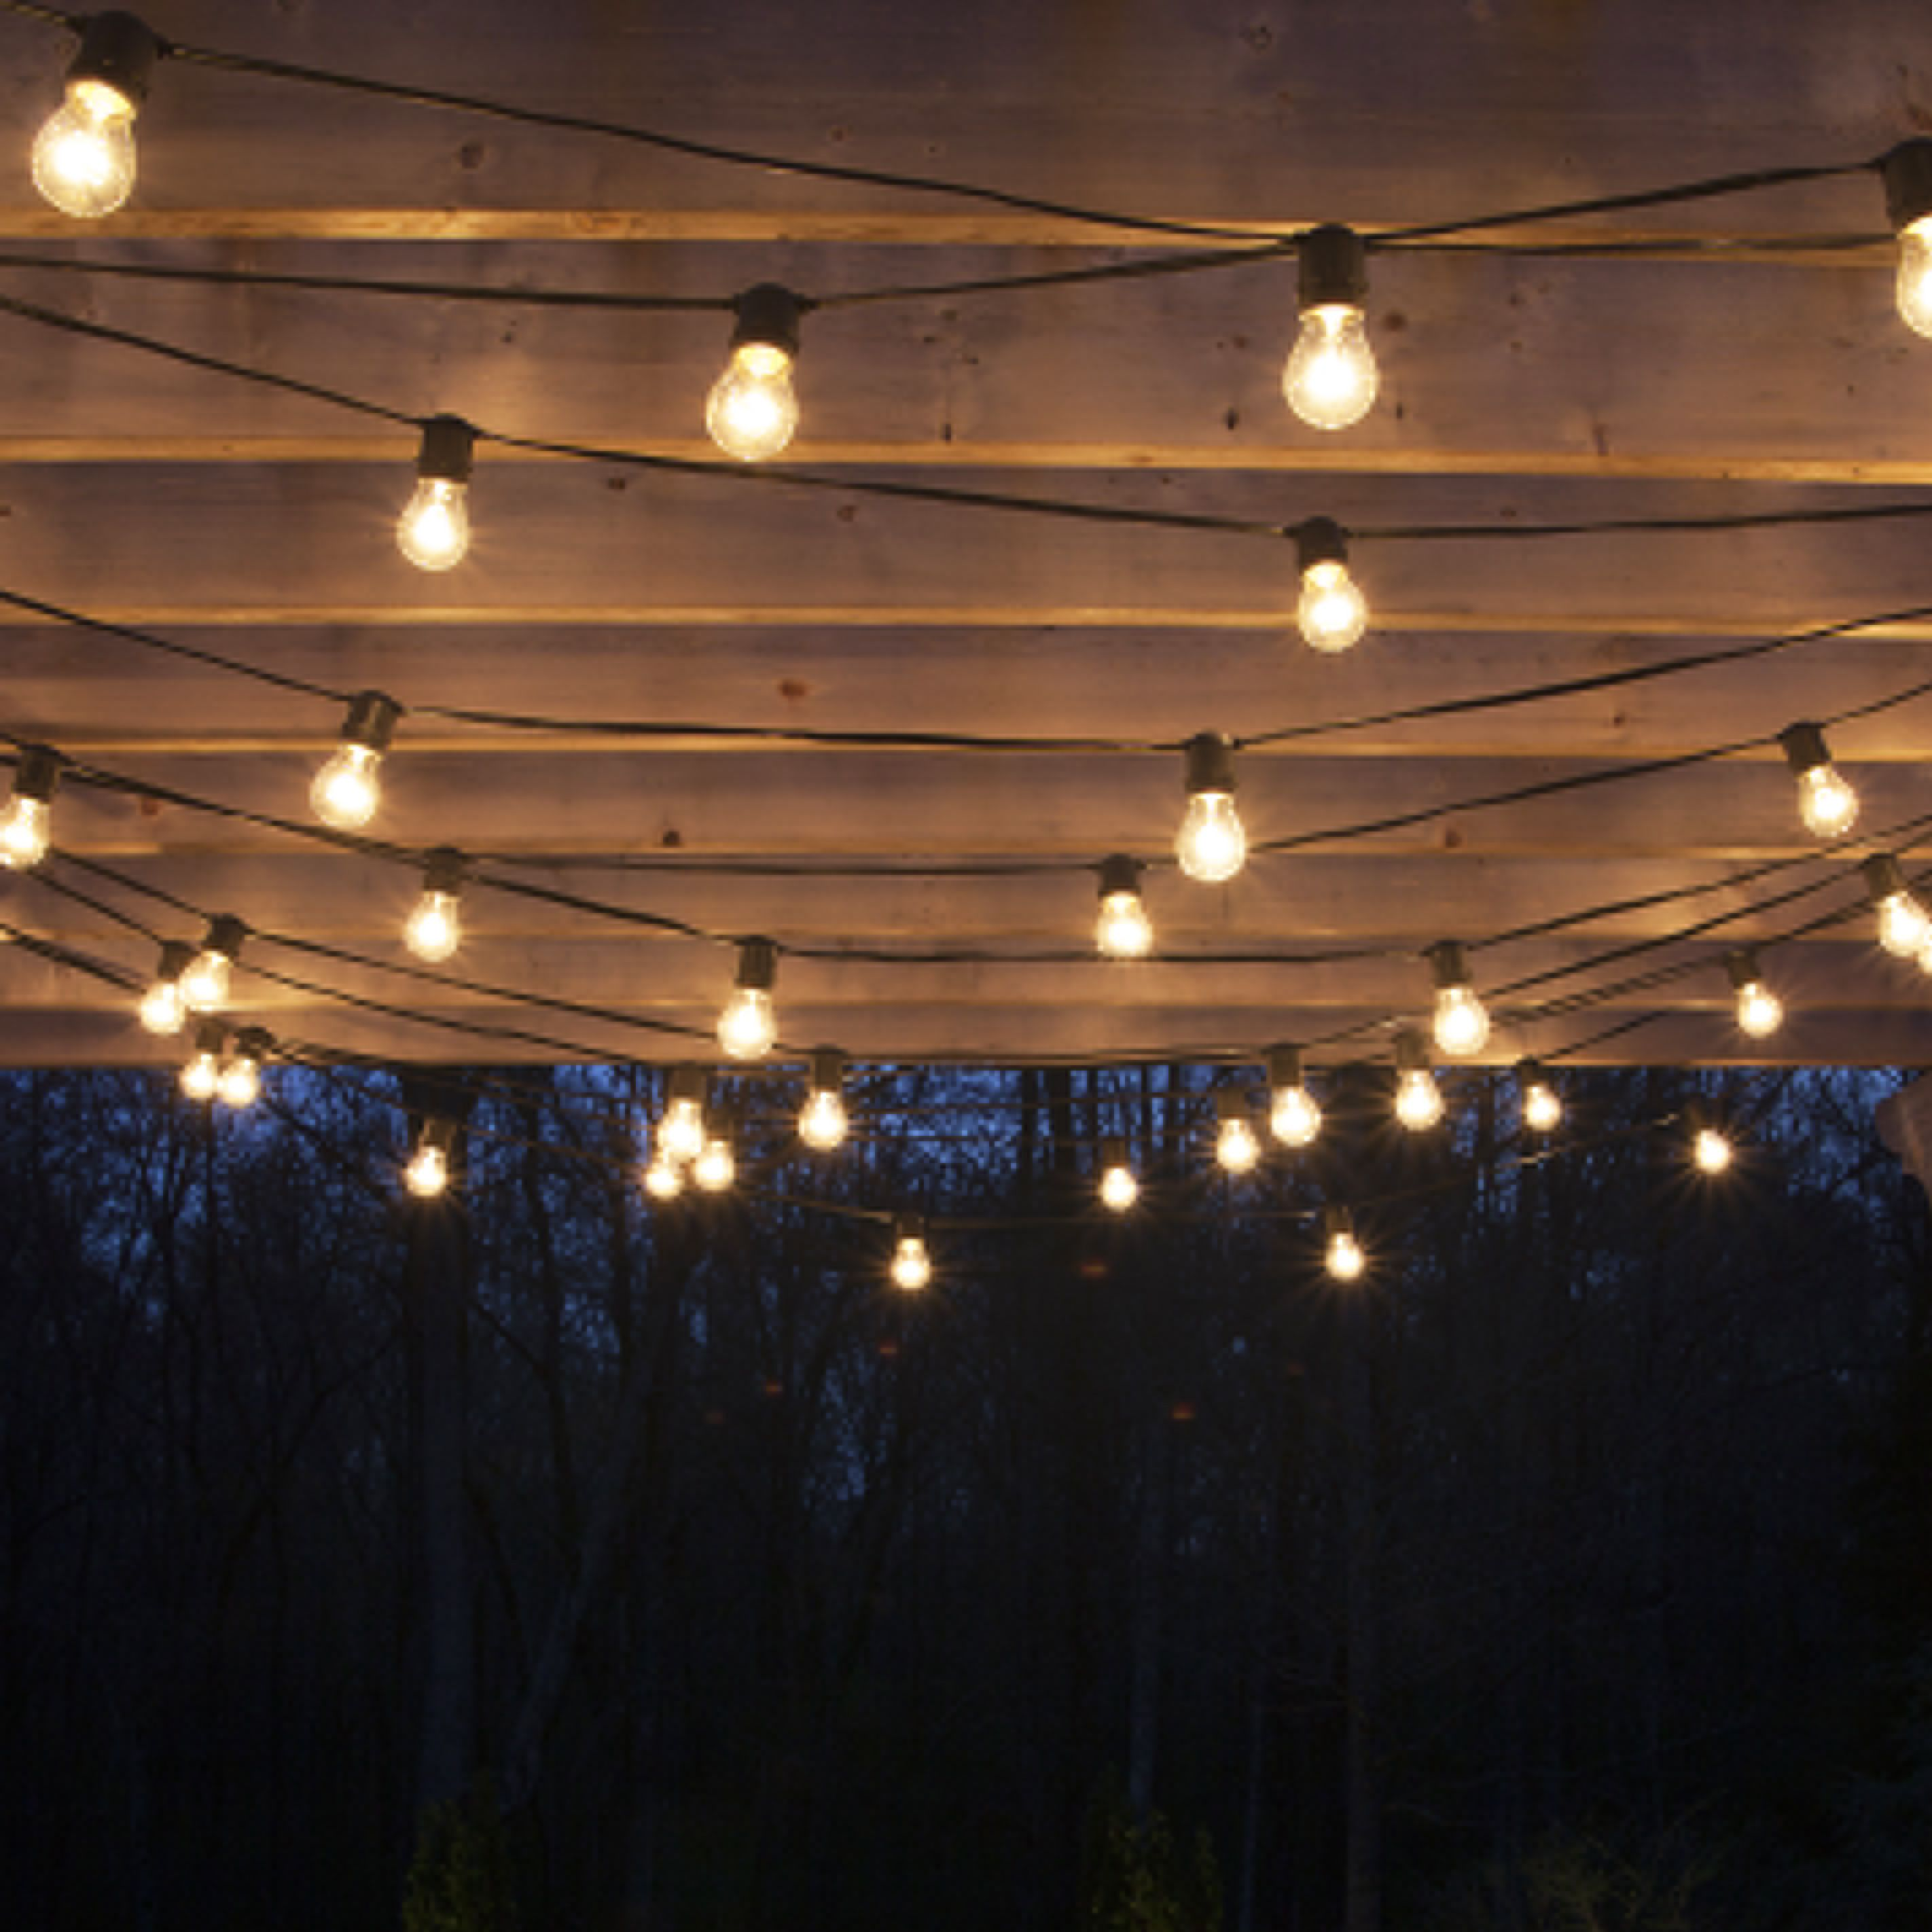 landscaped design lighting azeoxr home patio ideas garden